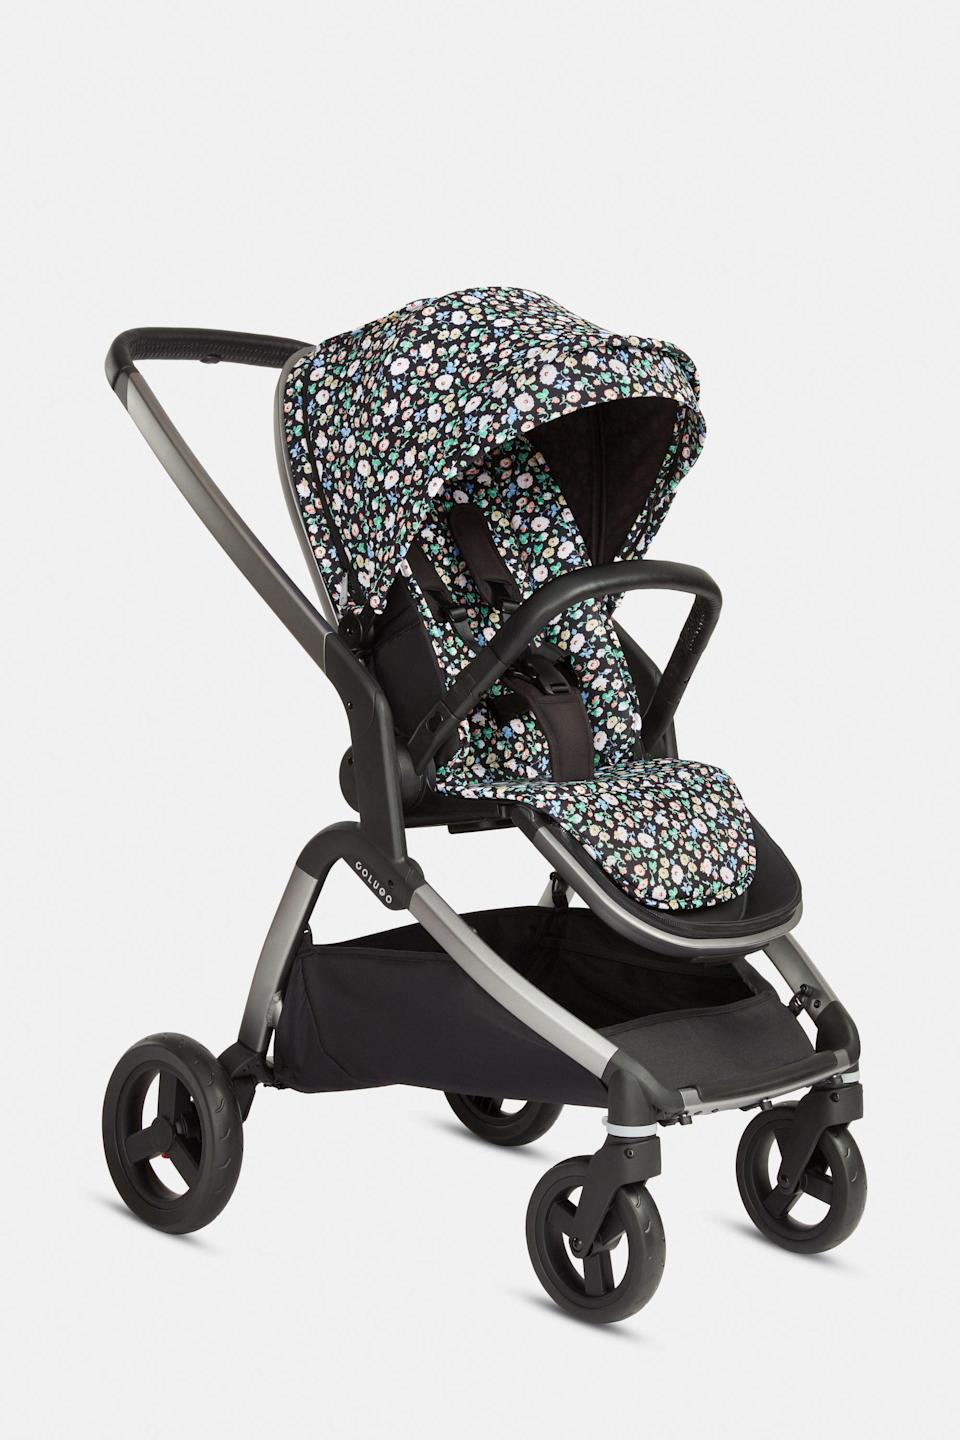 """<p><strong>Colugo</strong></p><p>hicolugo.com</p><p><strong>$445.00</strong></p><p><a href=""""https://hicolugo.com/products/the-complete-stroller?variant=31173572493382"""" rel=""""nofollow noopener"""" target=""""_blank"""" data-ylk=""""slk:Shop Now"""" class=""""link rapid-noclick-resp"""">Shop Now</a></p><p>An easy to use, everyday stroller that comes with some very cute covers...</p>"""